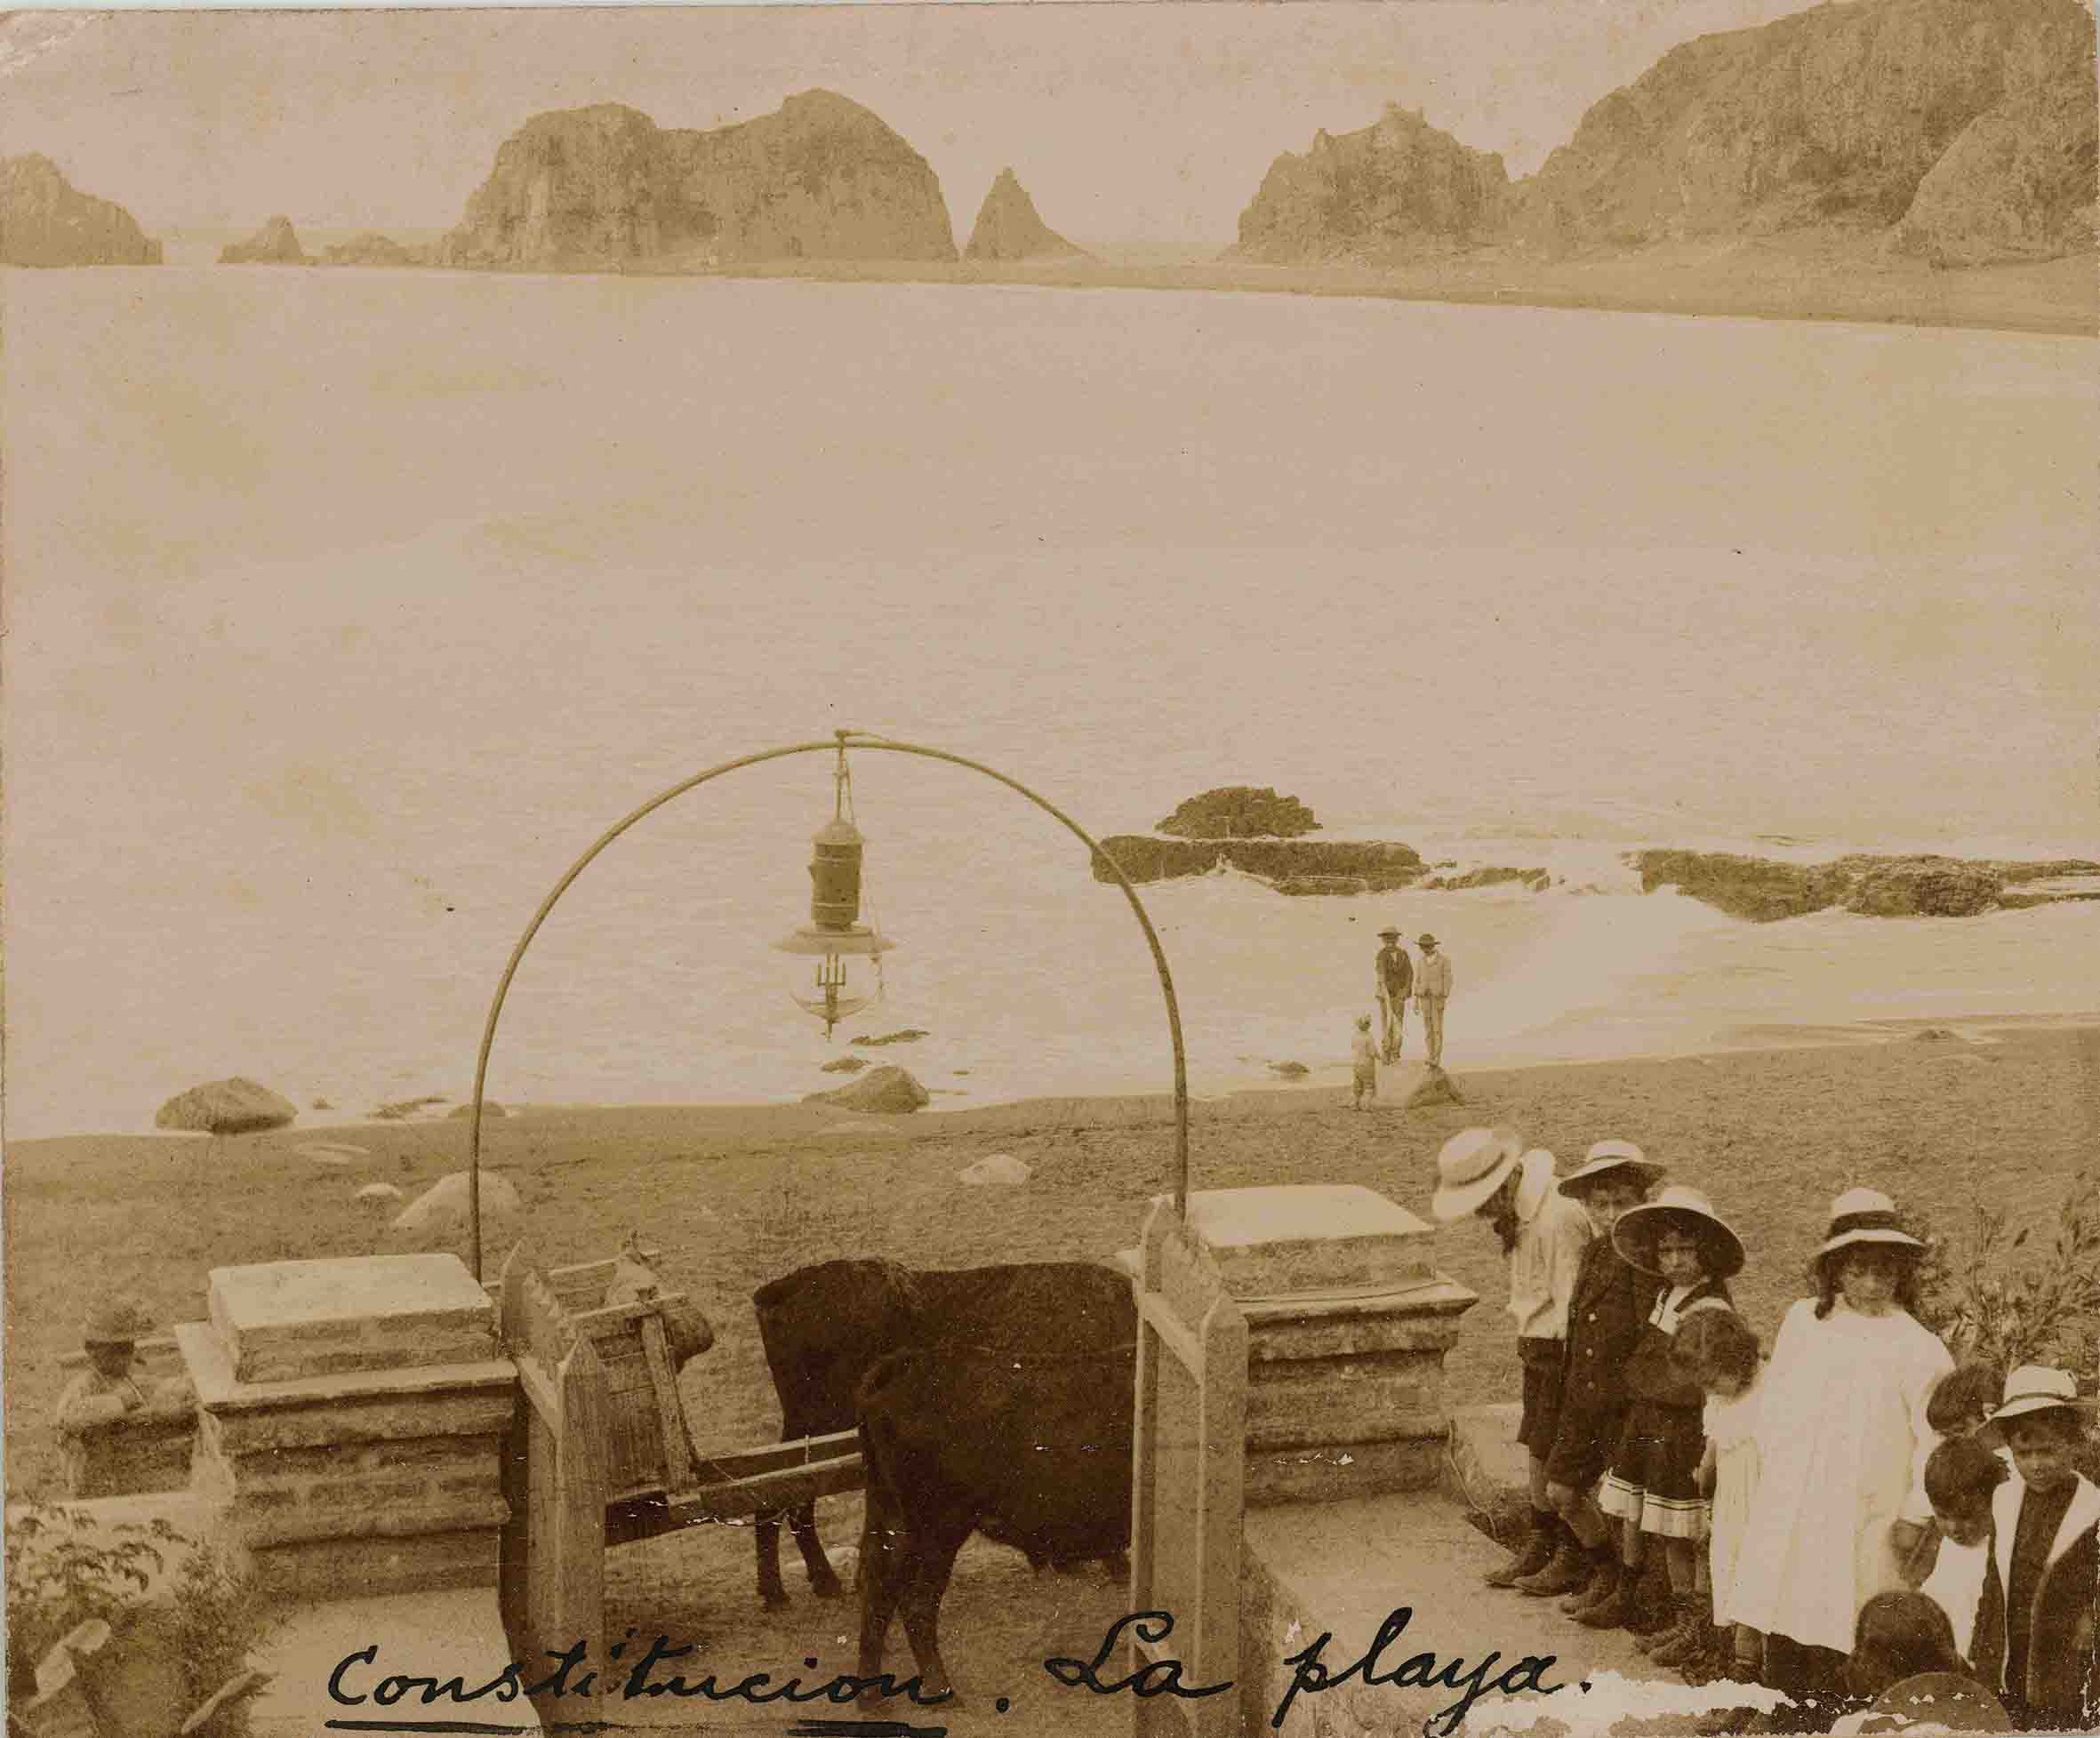 Enterreno - Fotos históricas de chile - fotos antiguas de Chile - Playa de Constitución ca. 1025